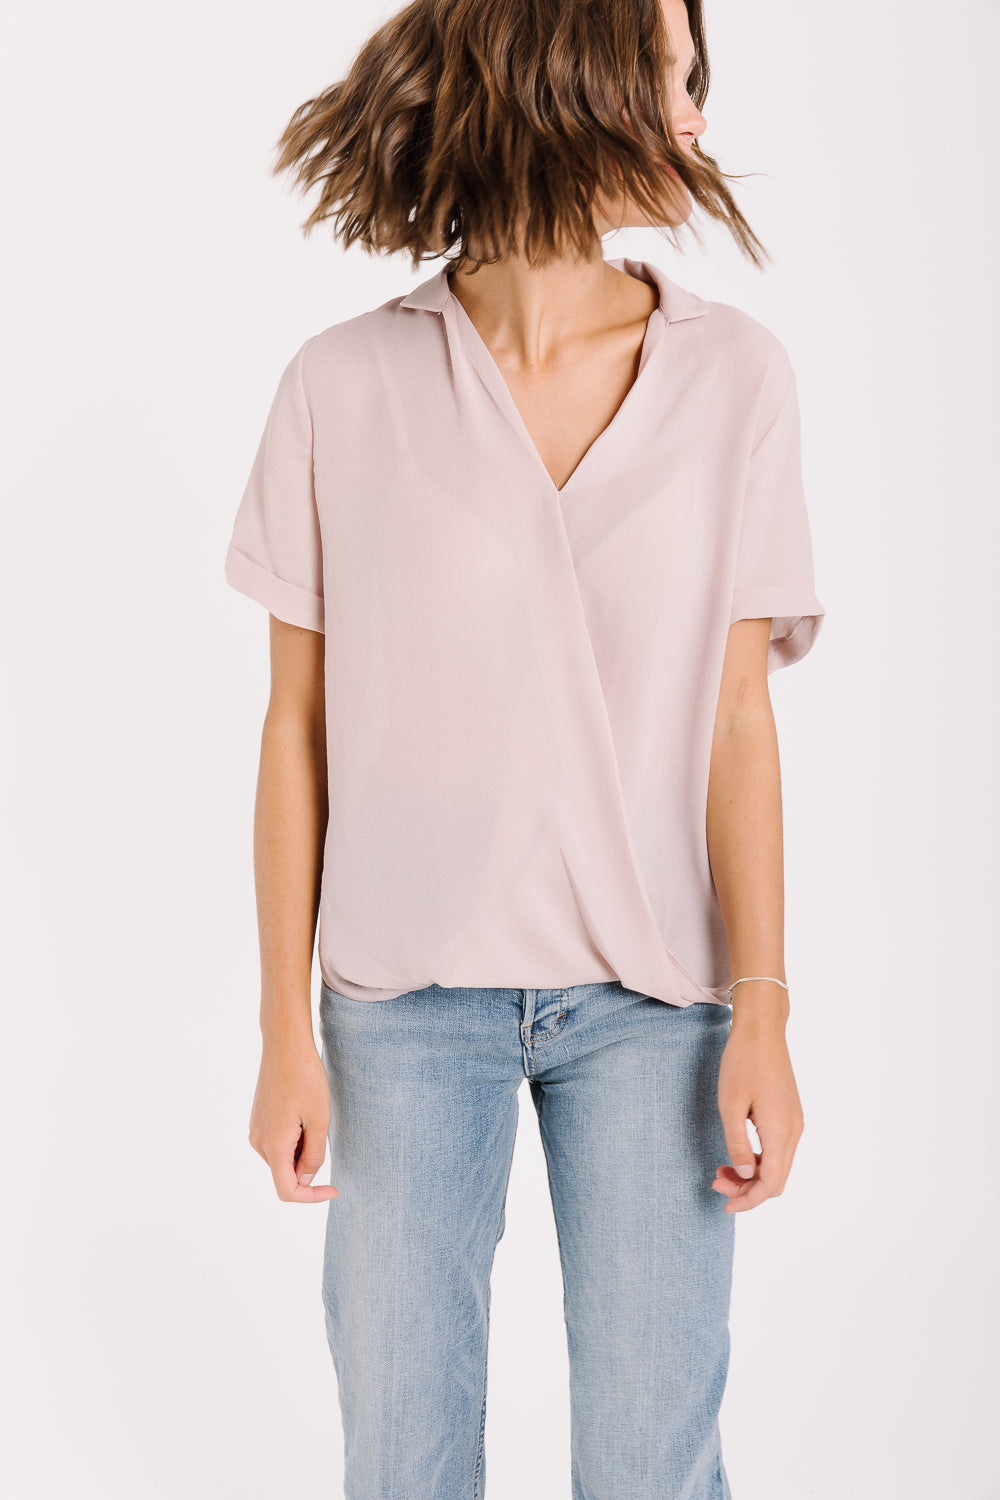 The Mayberry Wrap Collared Blouse in Dusty Pink